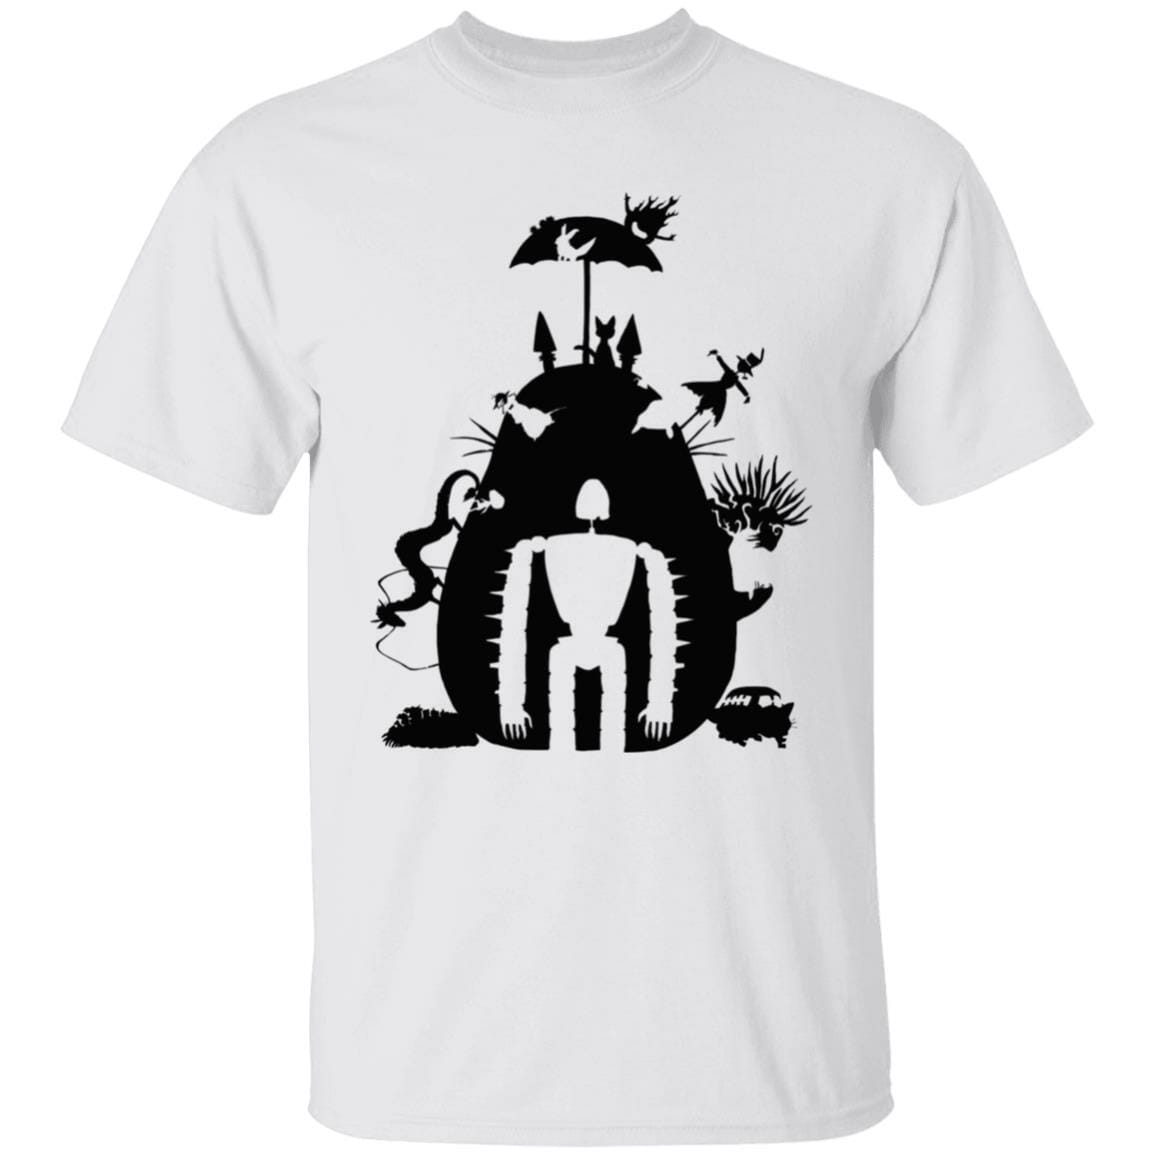 Studio Ghibli Black & White Art Compilation T Shirt Unisex